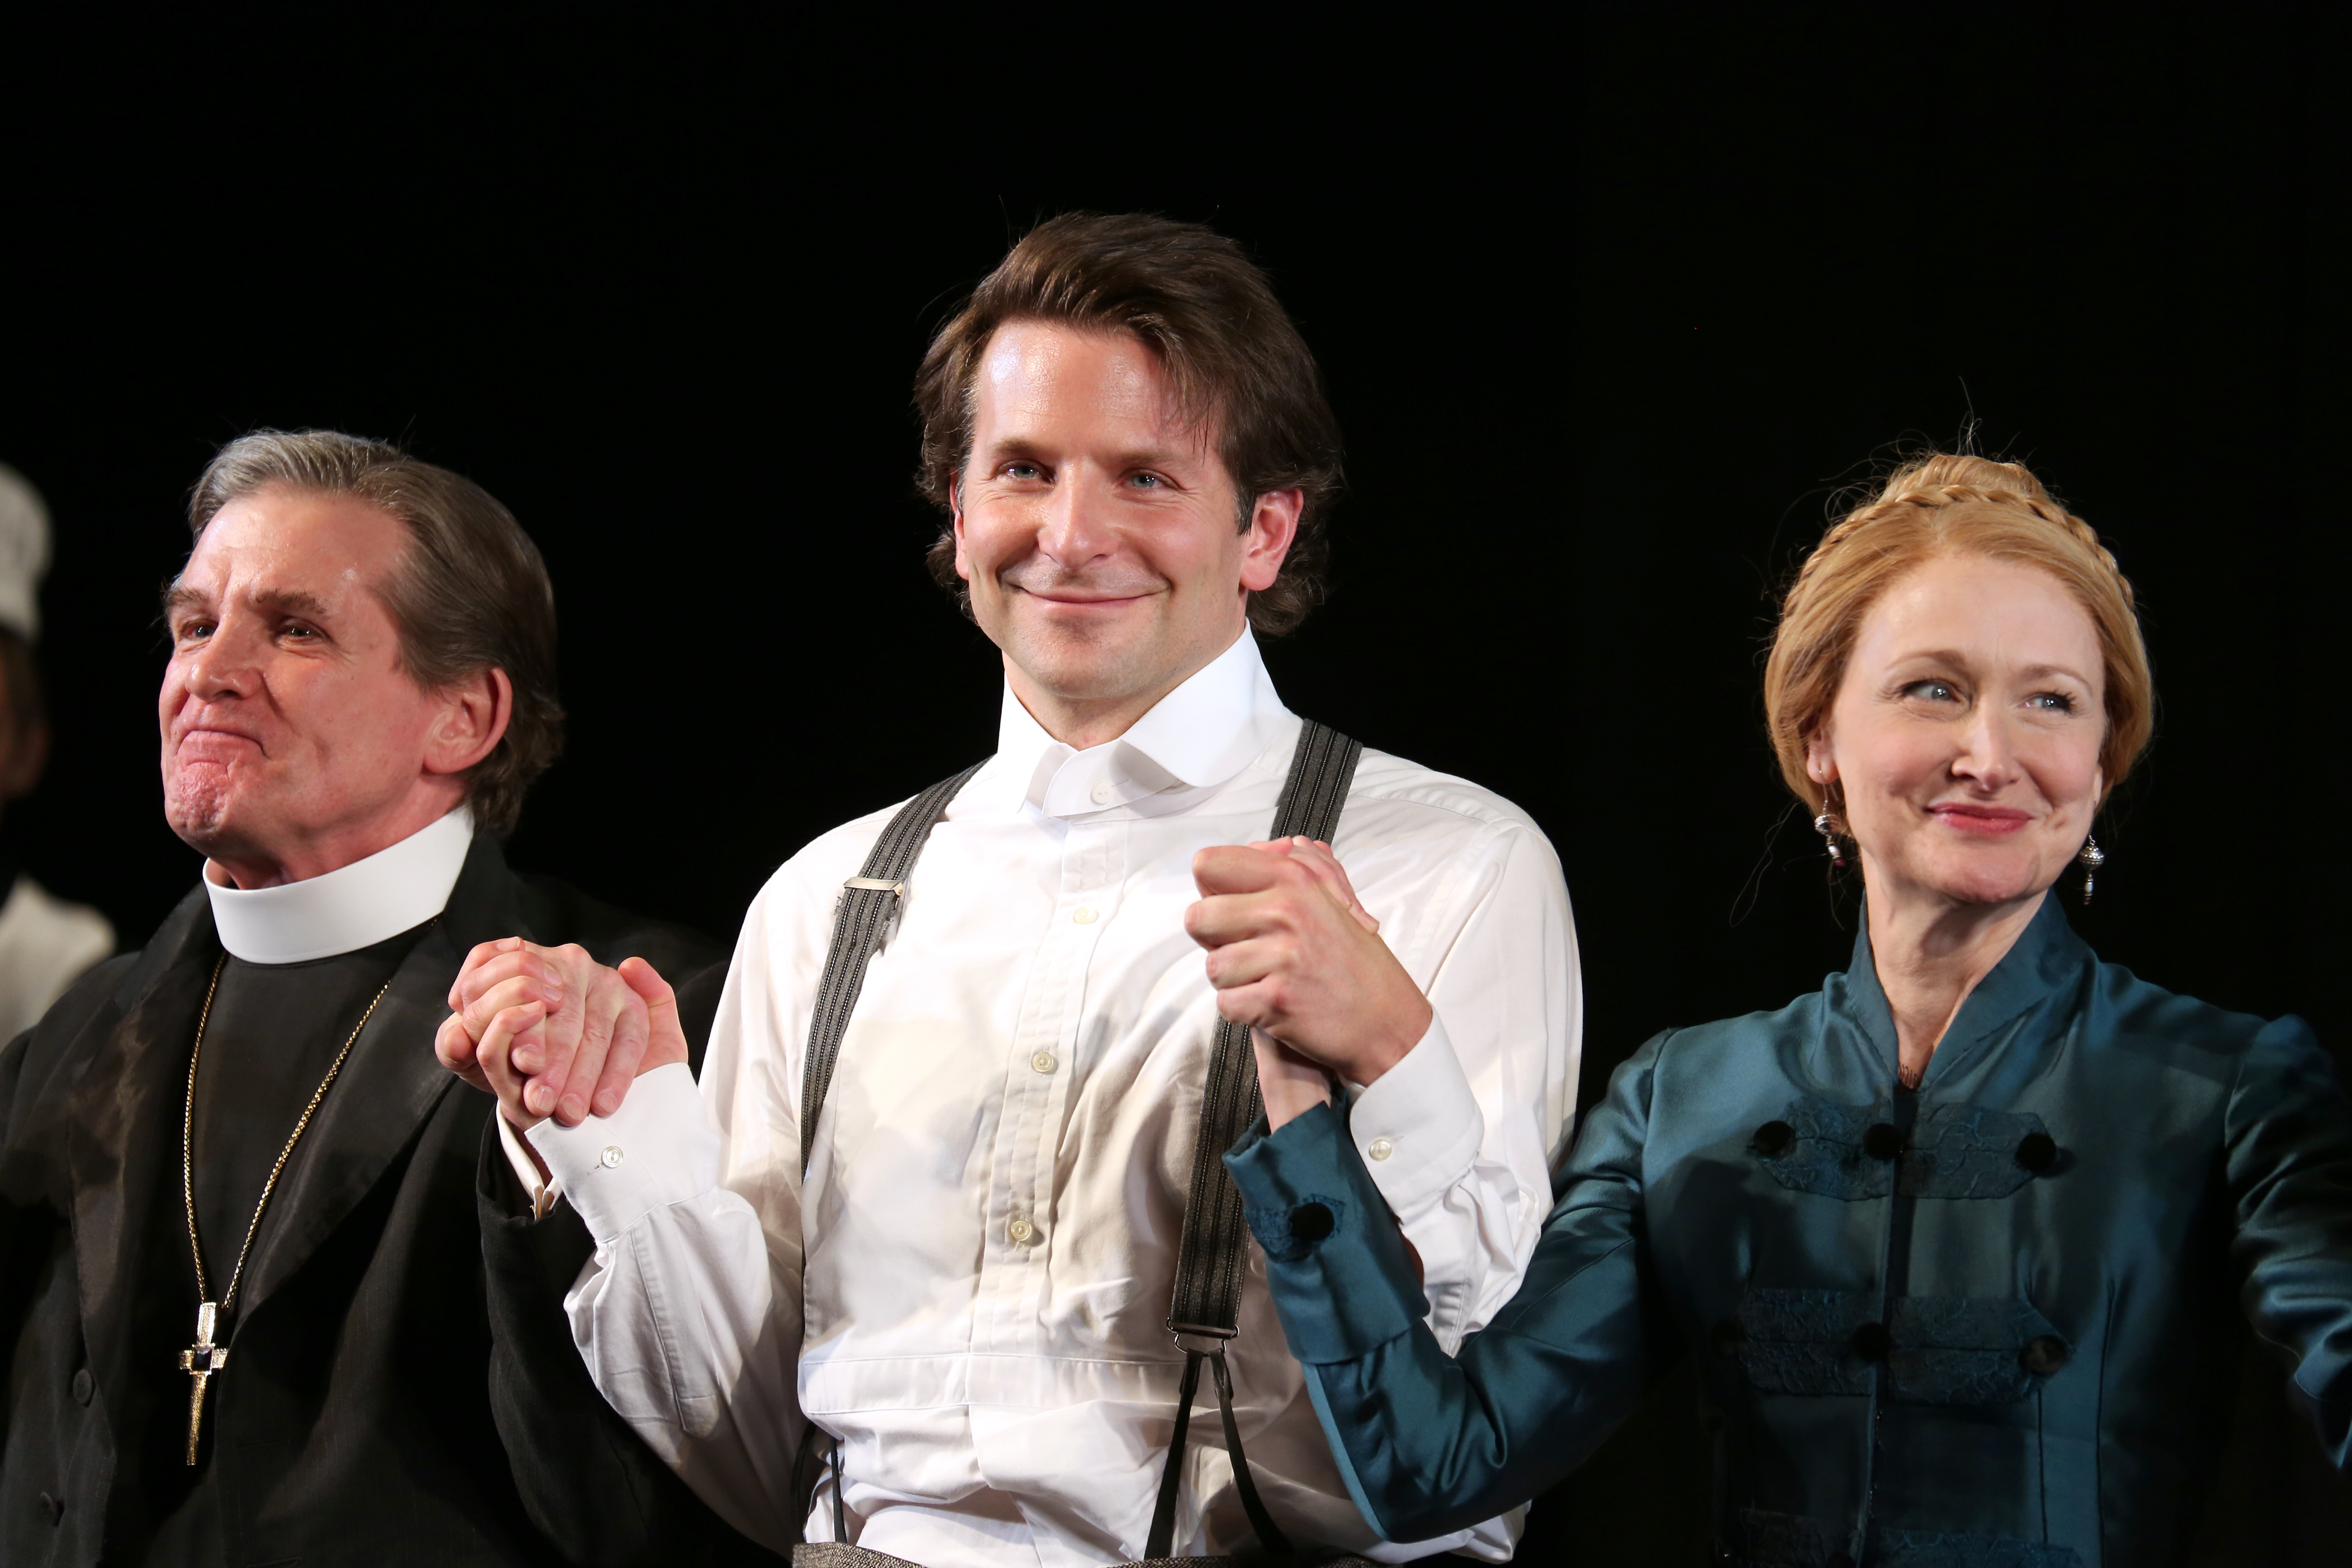 From left: Anthony Heald, Bradley Cooper and Patricia Clarkson during the Broadway opening-night-performance curtain call for The Elephant Man on Dec. 7, 2014, in New York City